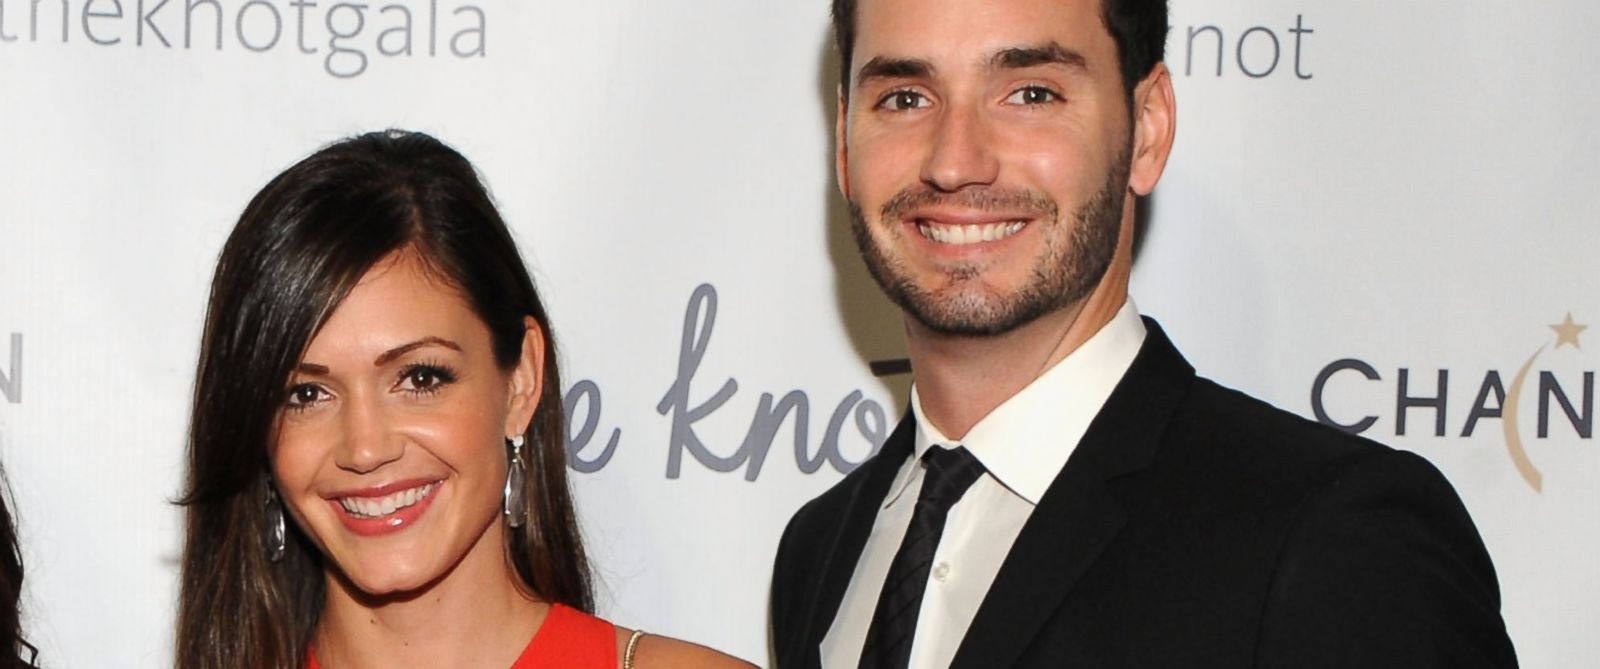 PHOTO: Desiree Hartsock and Chris Siegfried attend the 5th Anniversary Of The Knot Gala at New York Public Library on Oct. 13, 2014 in New York City.